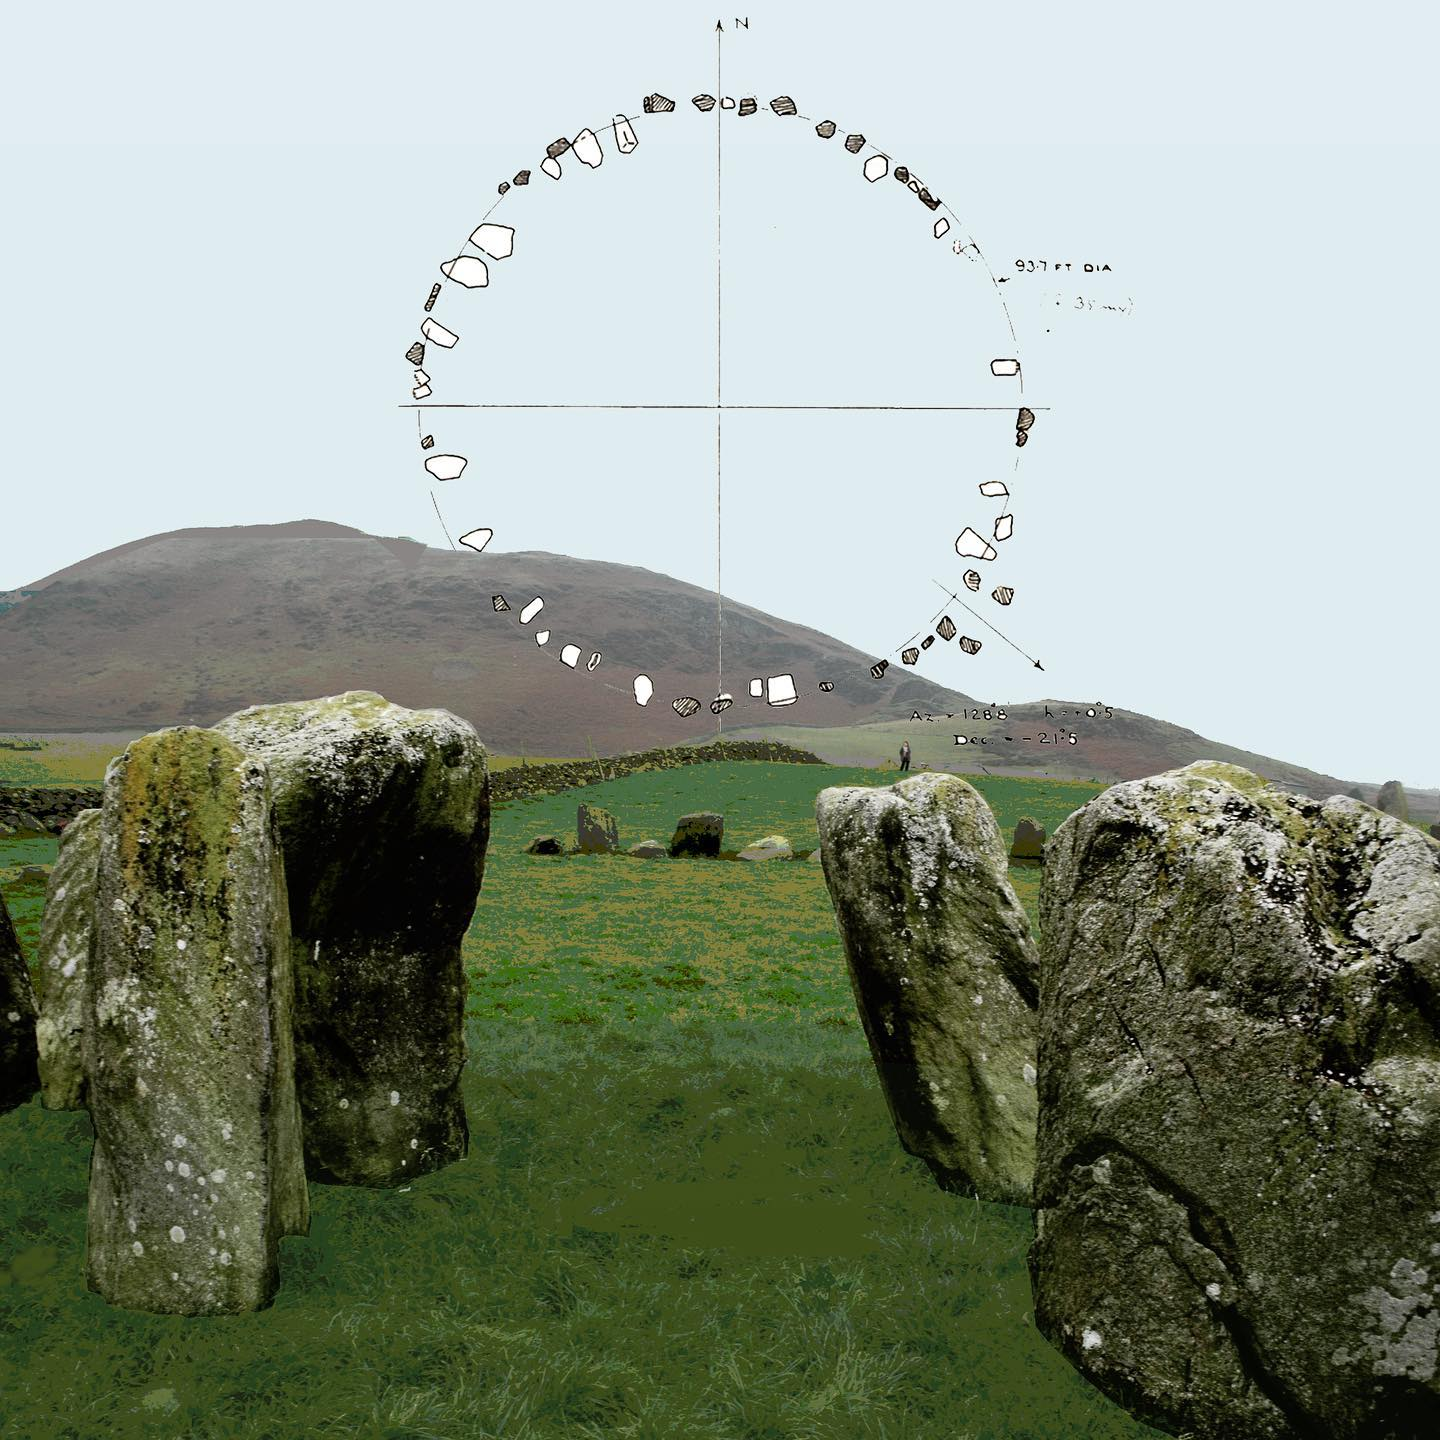 swinside stone circle. portal stone entrance. thom's plan showing south-east portal stones.